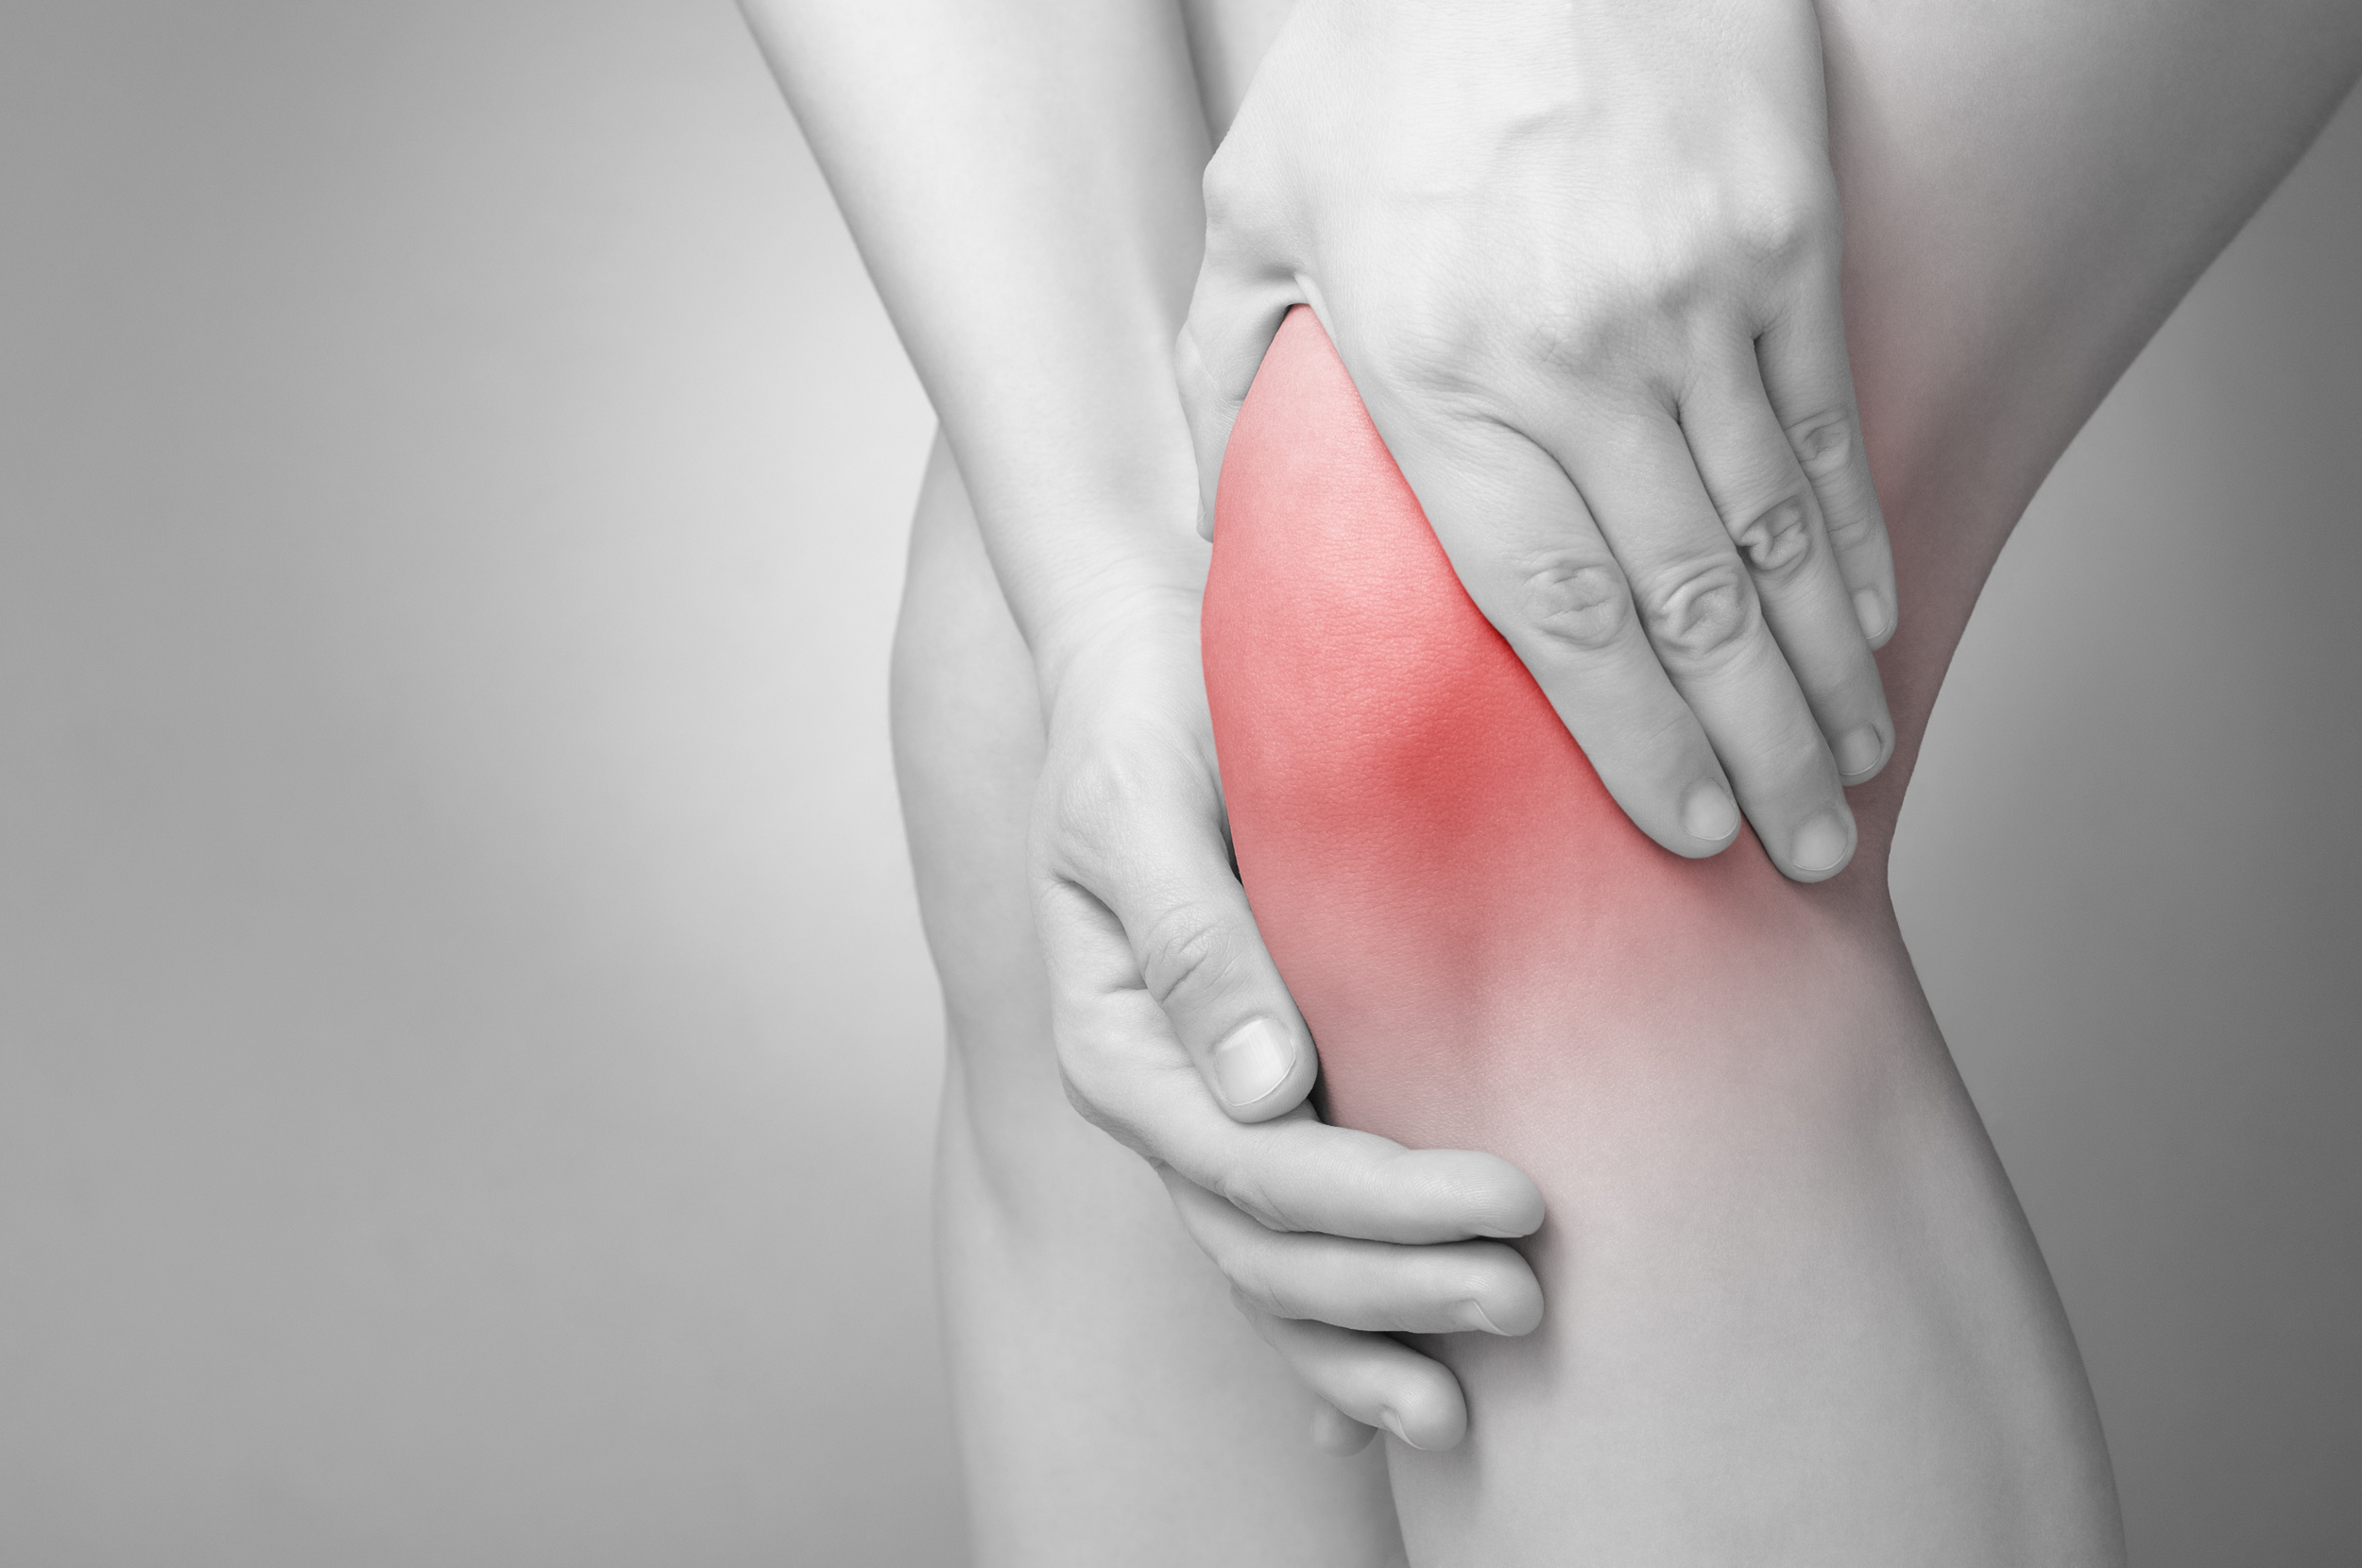 Chronic knee pain may be caused by acute injury or medical conditions, such as osteoarthritis.  Beaver County Spinal Disc & Neurology Center offers a number of nonsurgical treatment options.